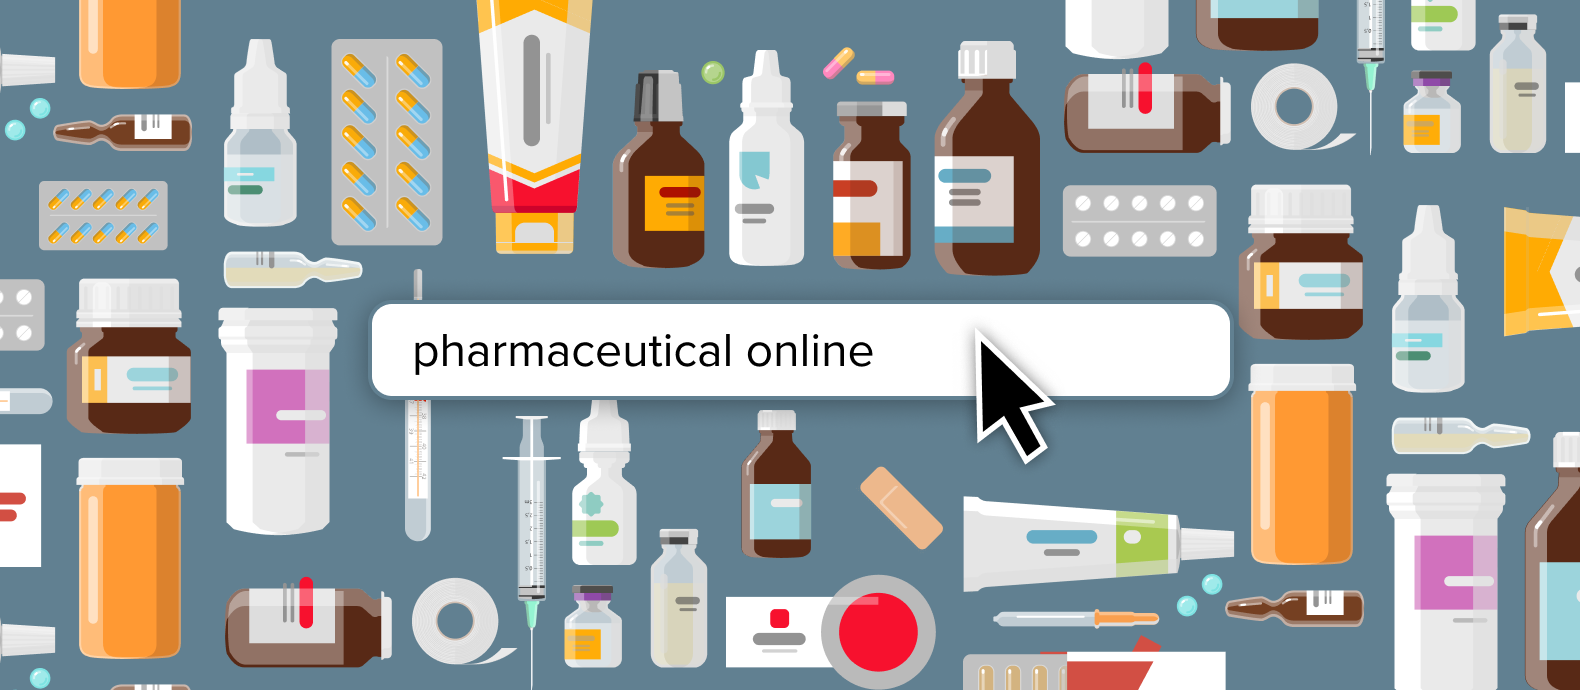 A Bitter Pill to Swallow: Fighting the Fake Pharmaceuticals Online